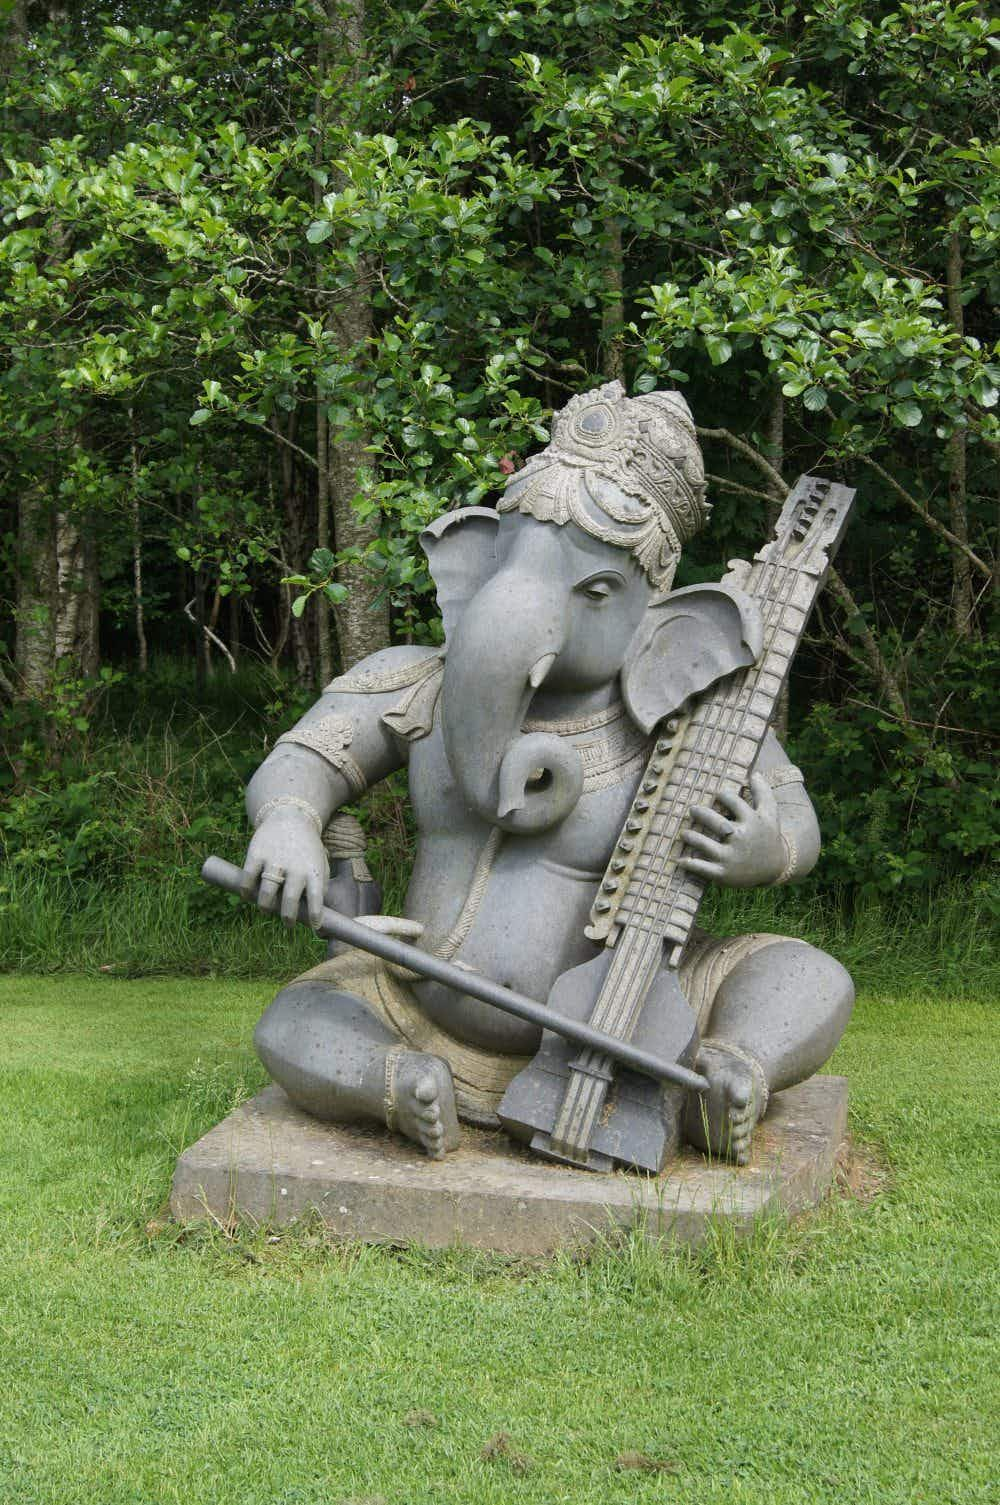 Take a look inside the forgotten Indian sculpture park in a quiet corner of Ireland